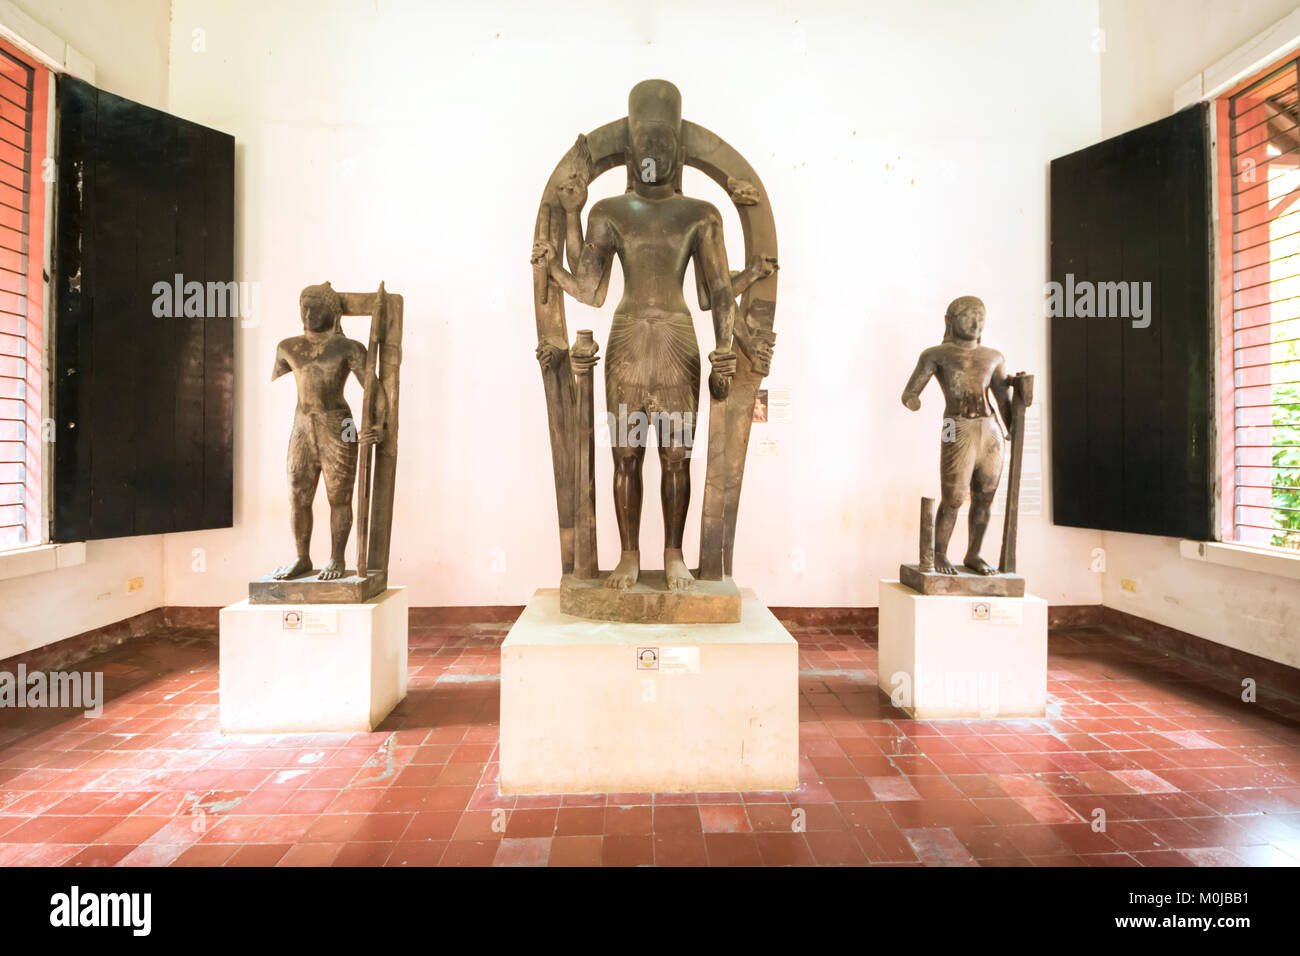 Gallery of Khmer art at the National Museum of Arts; Phnom Penh, Cambodia - Stock Image